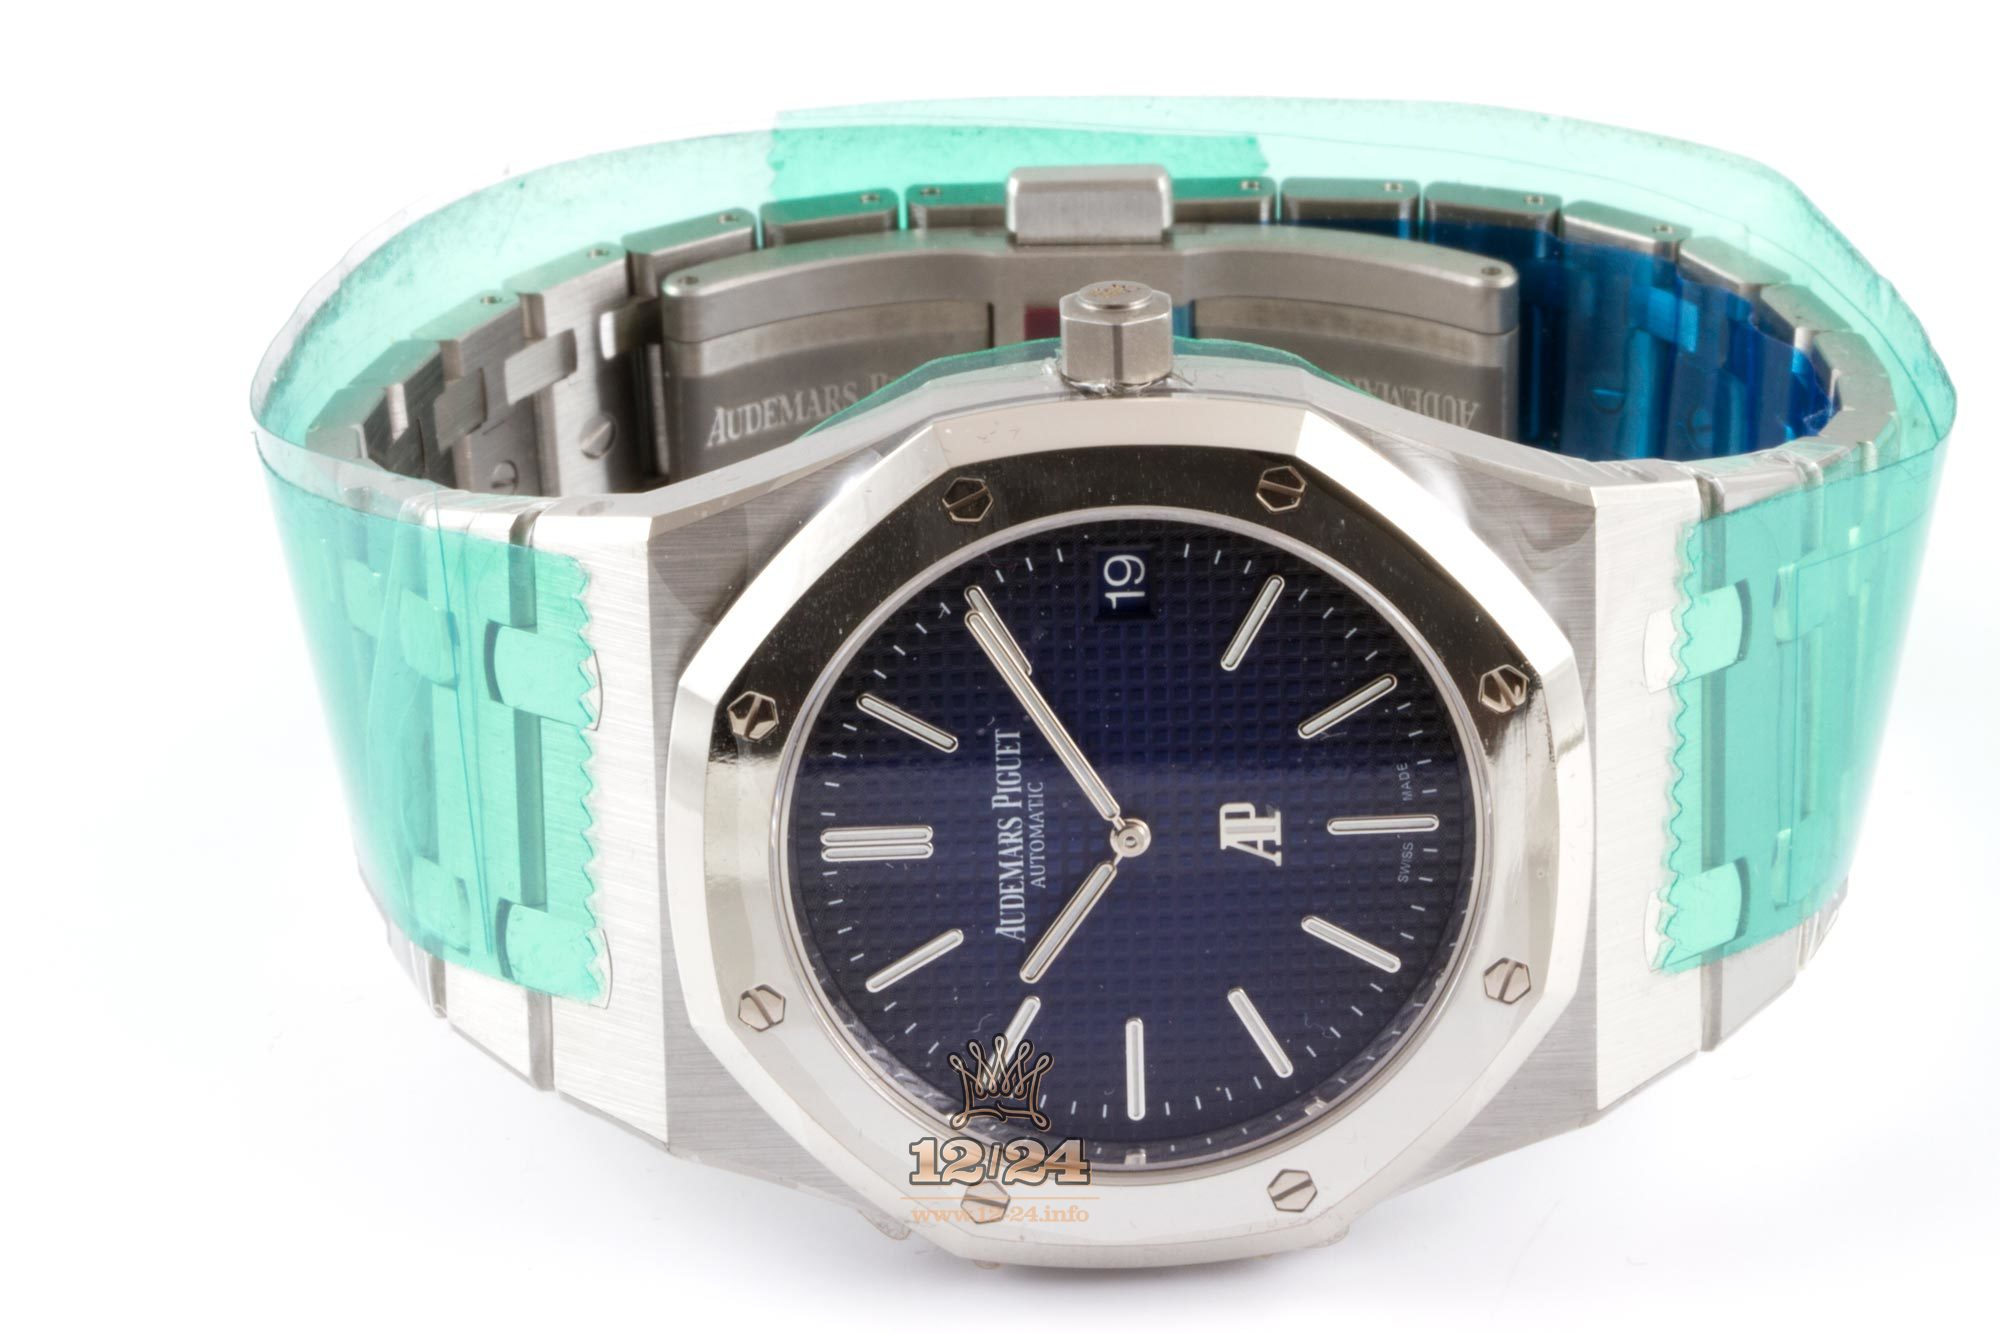 Audemars Piguet Extra-Thin 15202IP.OO.1240IP.01